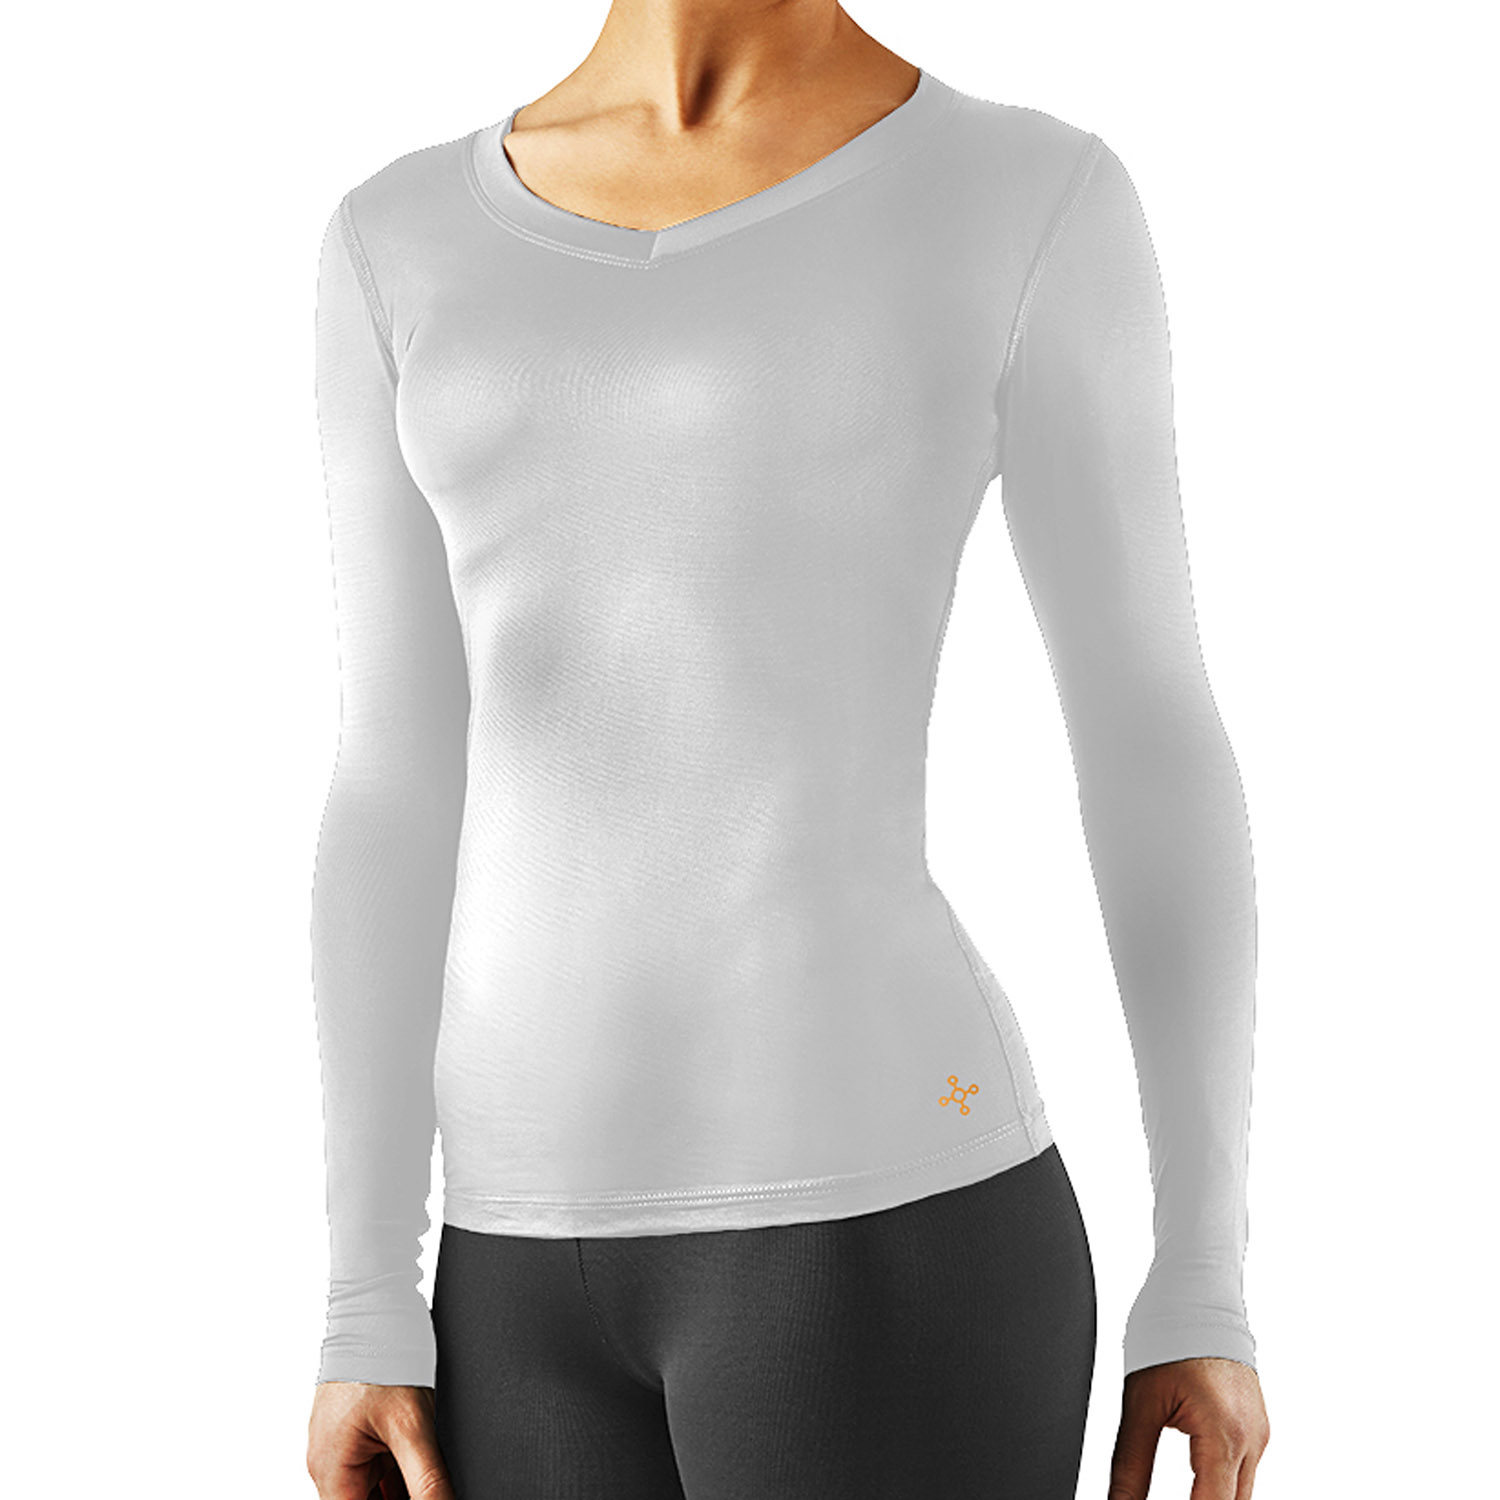 Tommie Copper Women's Journey Compression Long Sleeve Shirt